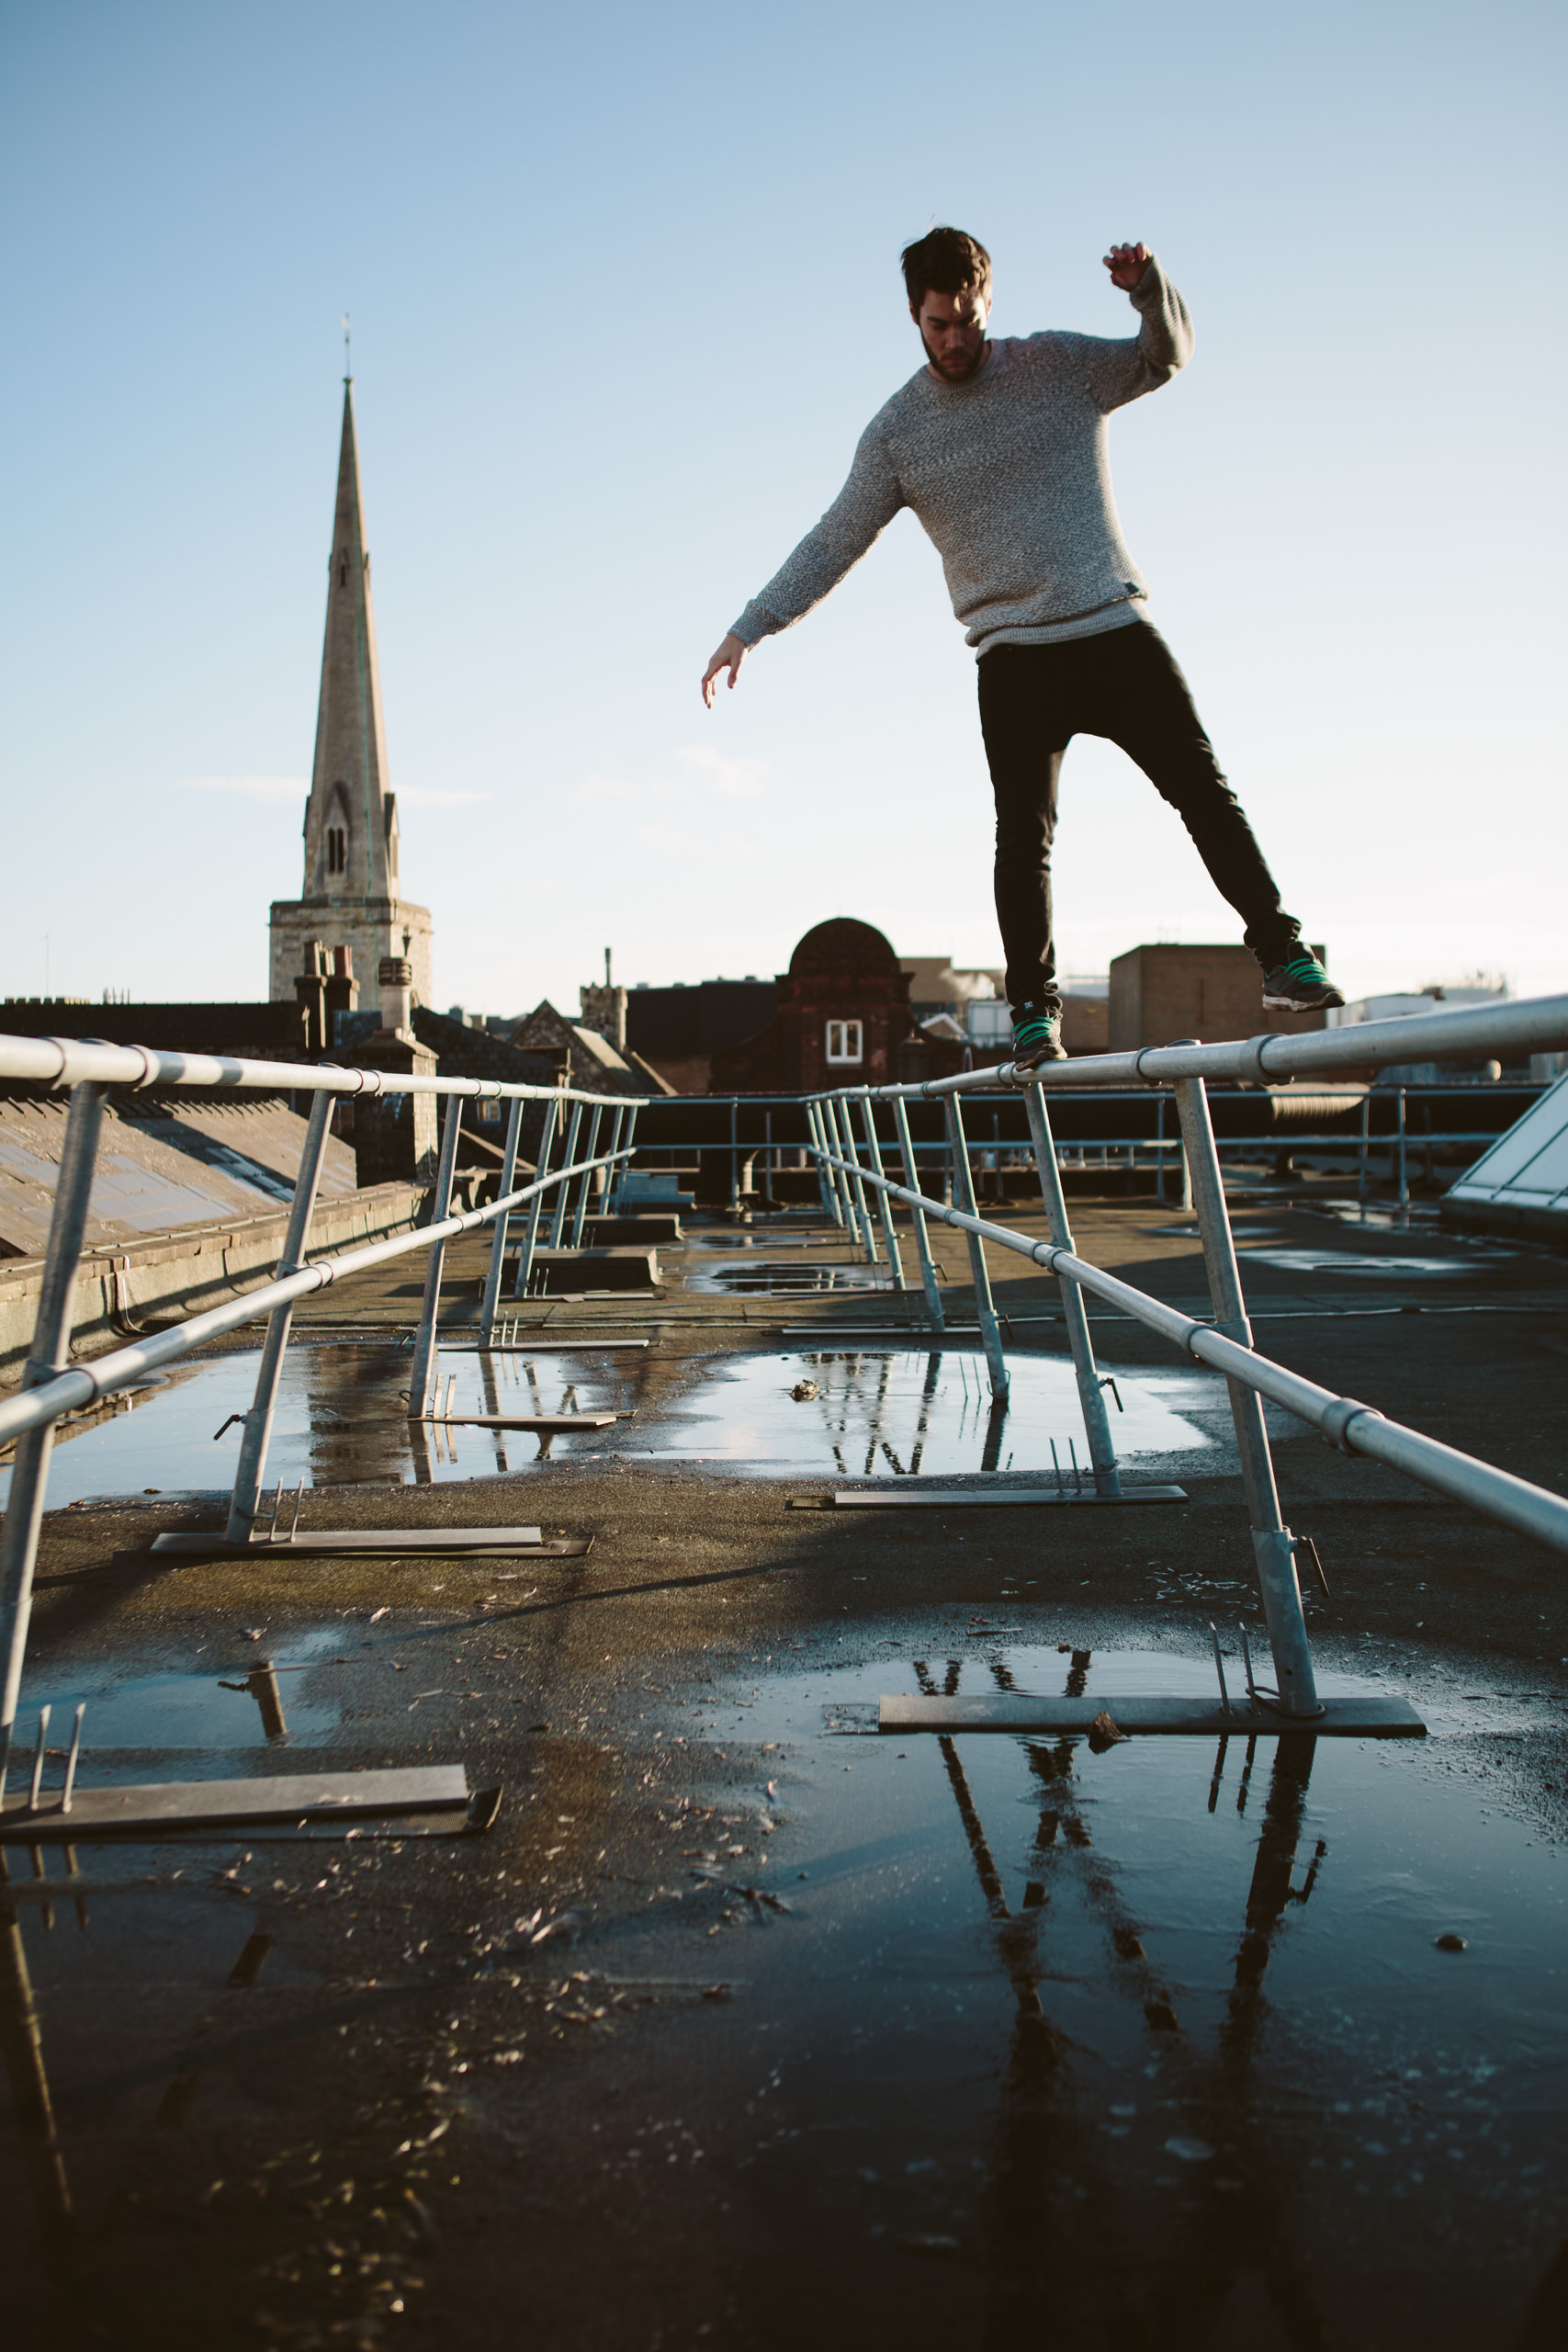 Ampisound-Parkour-Freerunning-Photographer-23.jpg